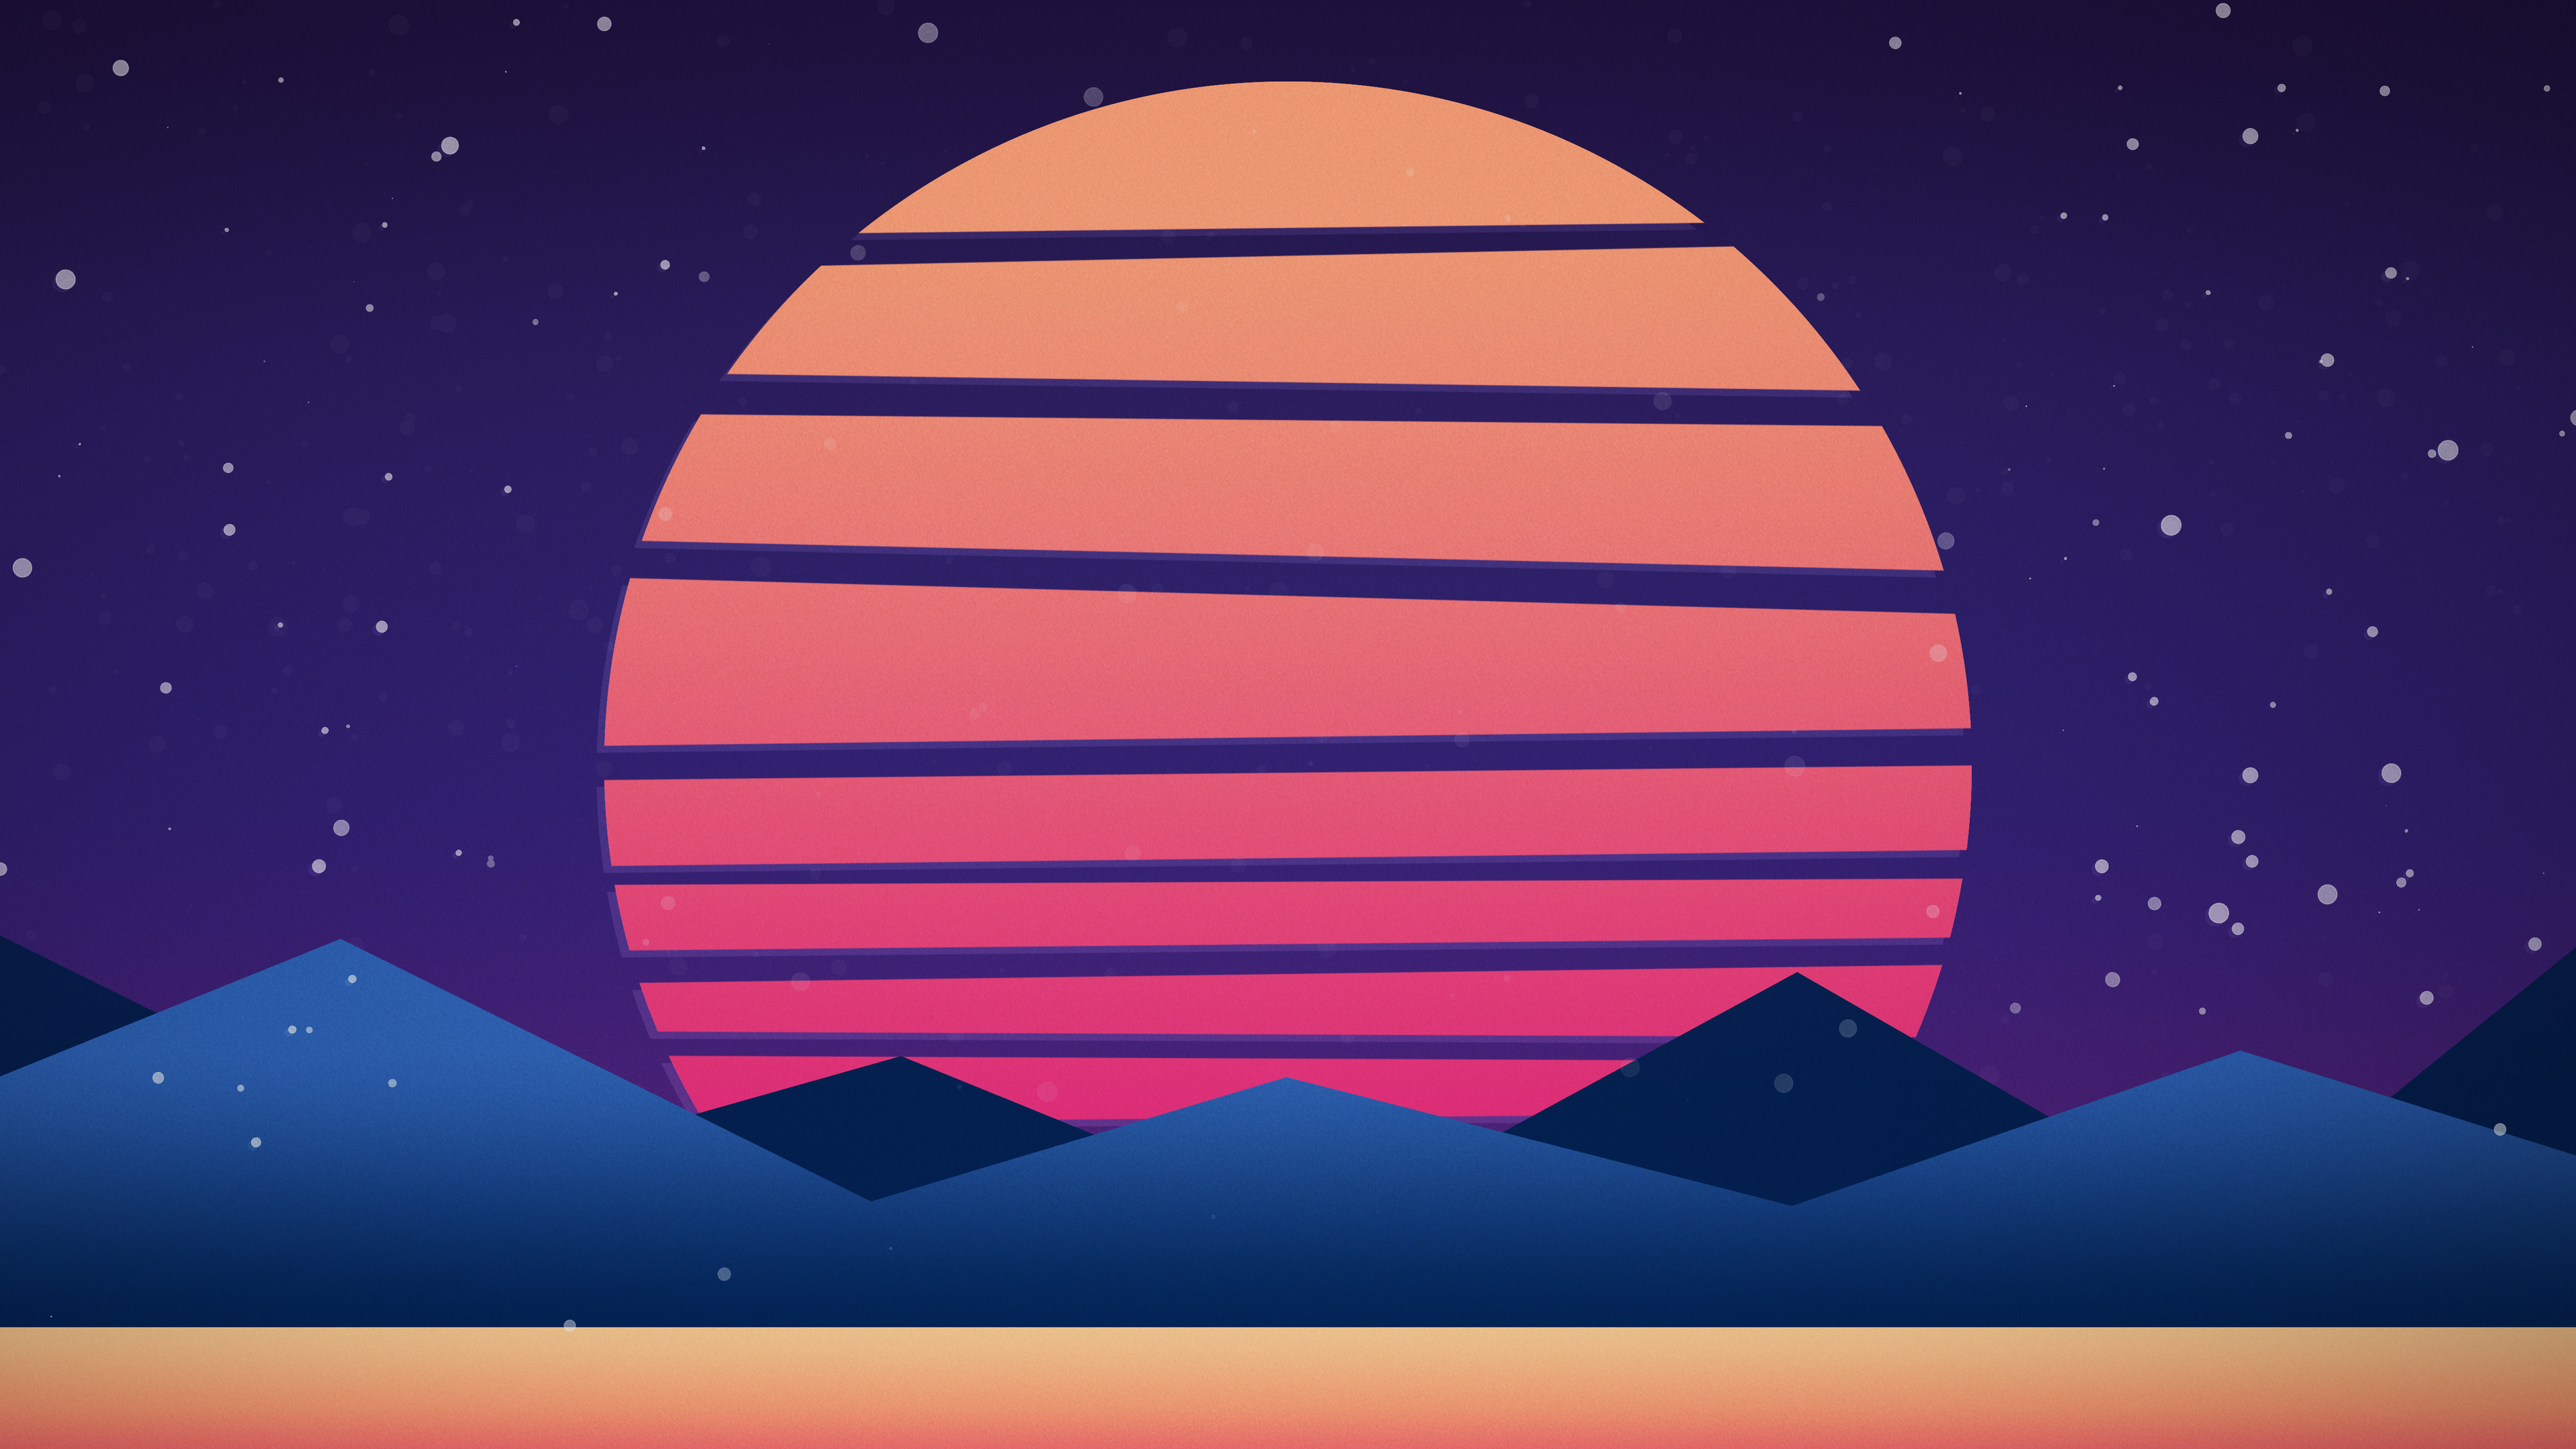 sunset mountains minimalism retrowave 5k 1540751702 - Sunset Mountains Minimalism Retrowave 5k - sunset wallpapers, retrowave wallpapers, mountains wallpapers, minimalism wallpapers, hd-wallpapers, digital art wallpapers, artwork wallpapers, artist wallpapers, 5k wallpapers, 4k-wallpapers